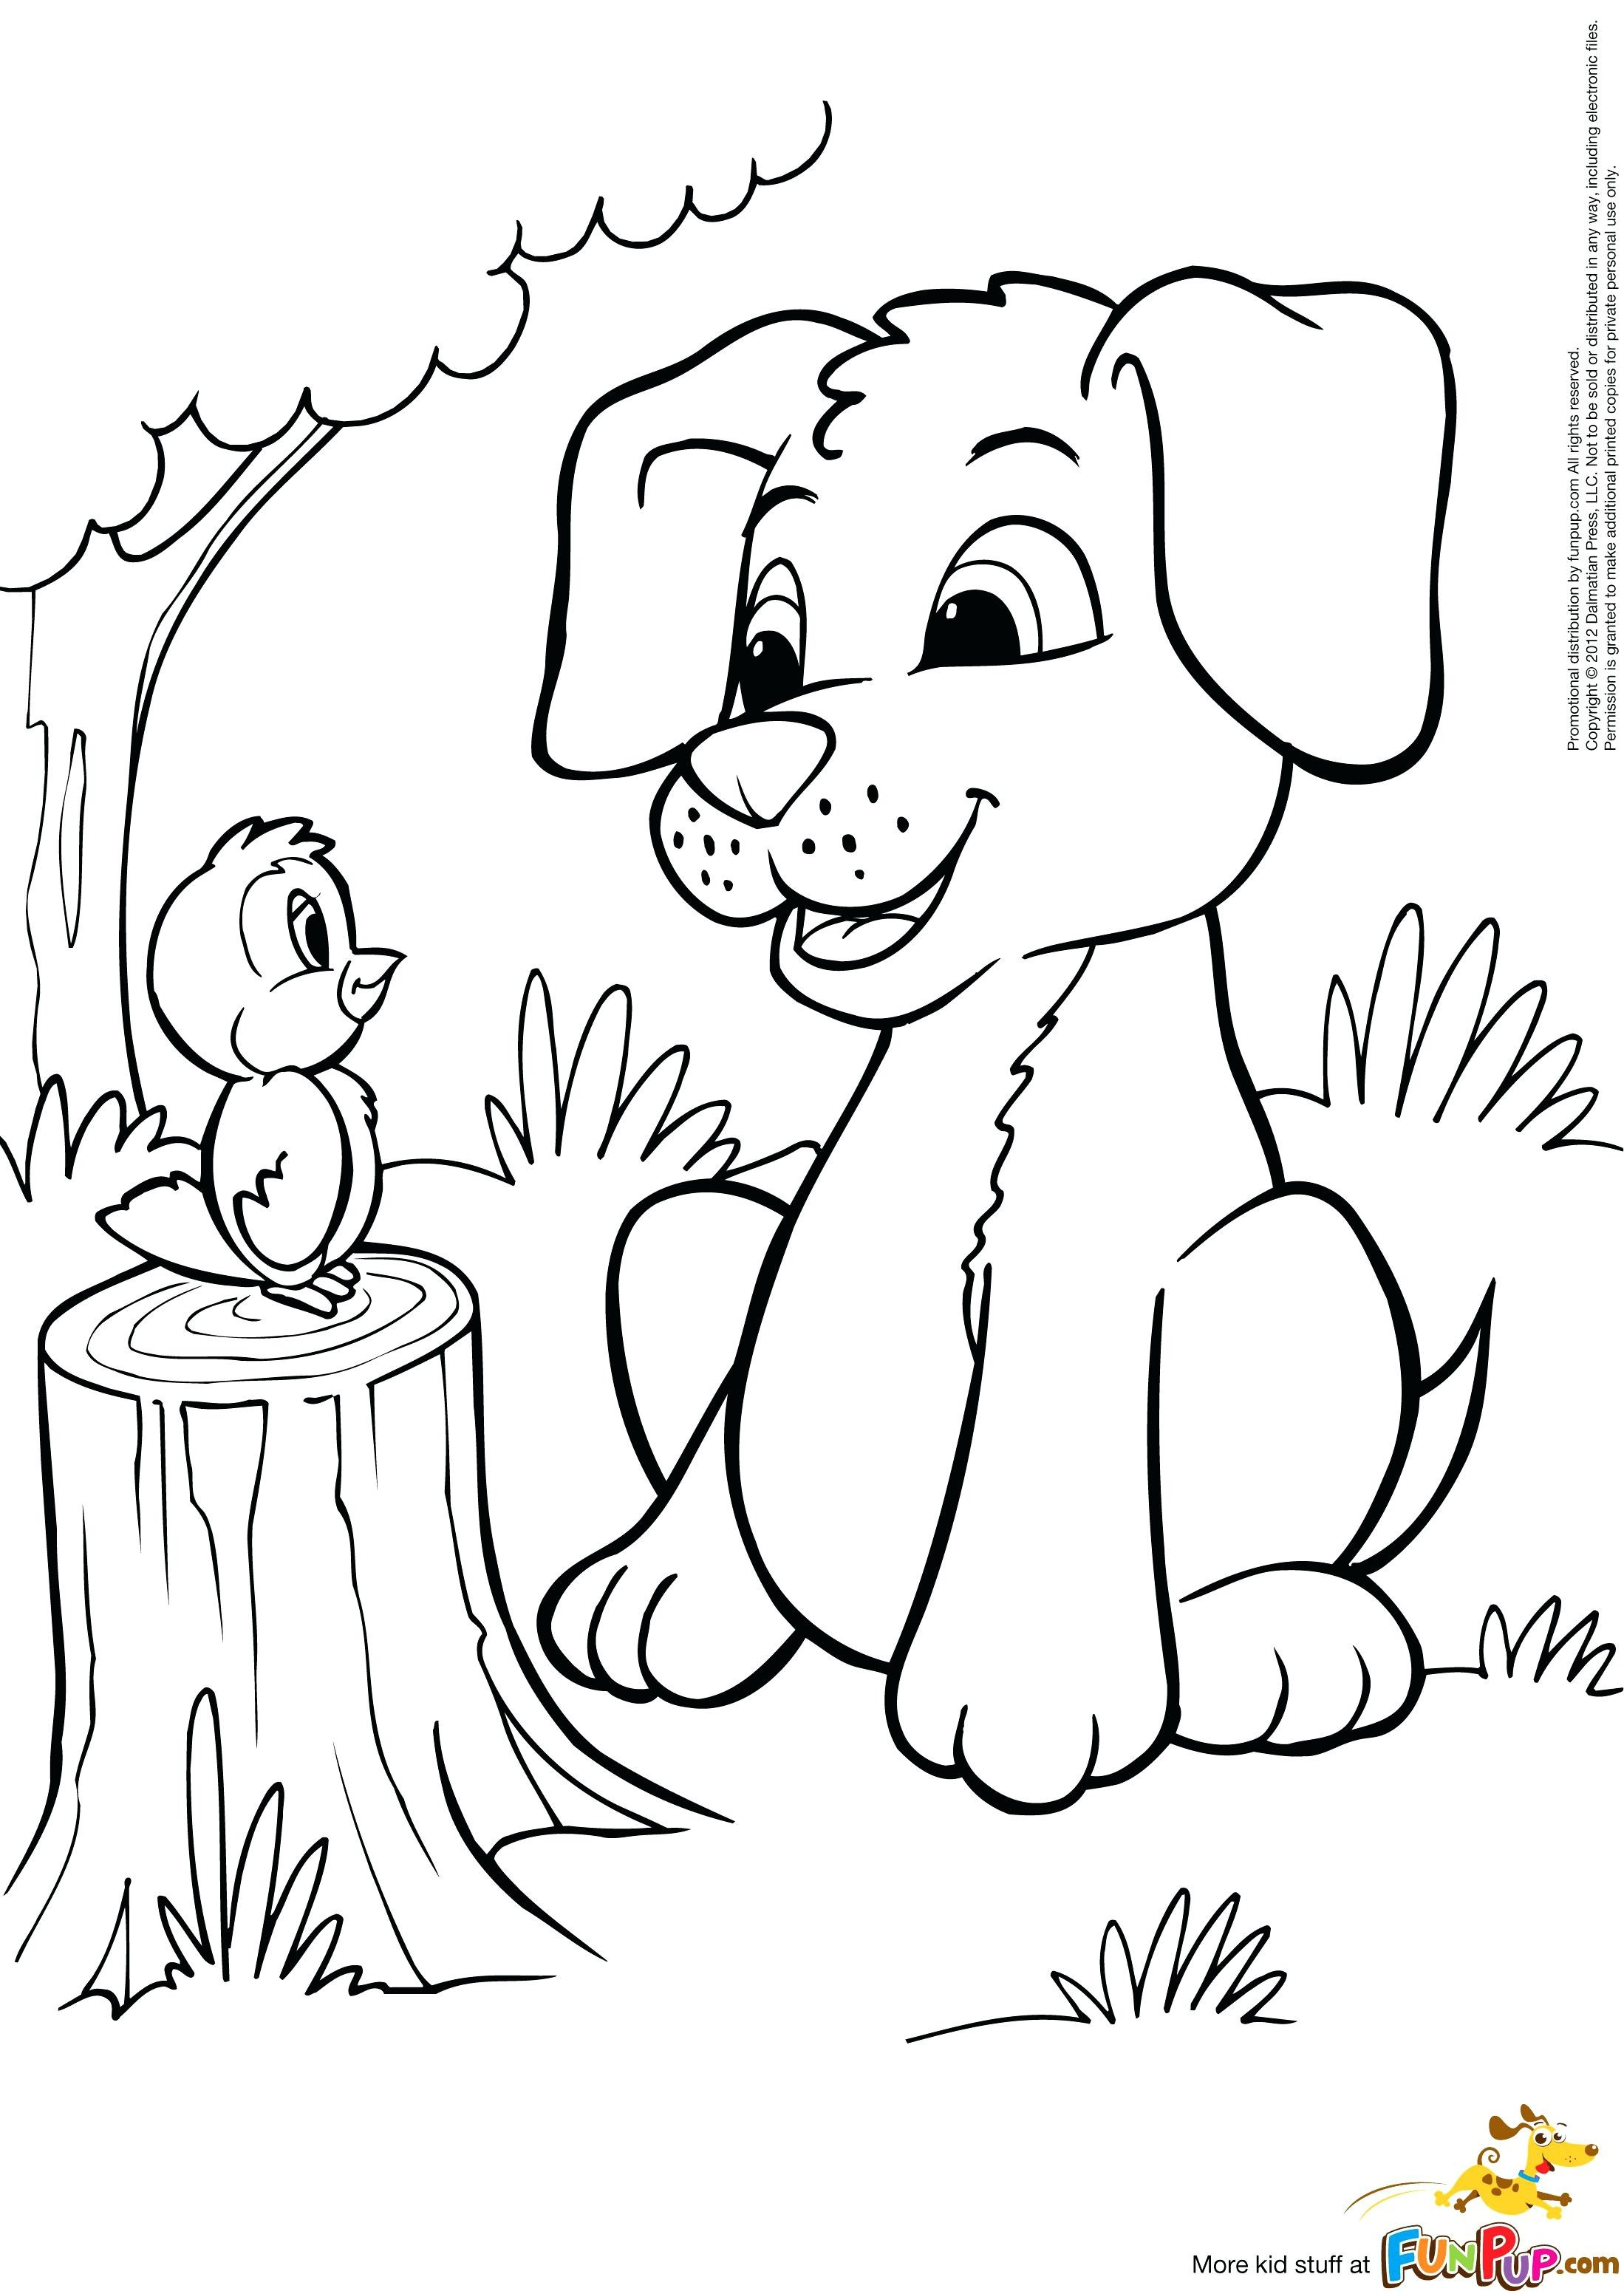 Christmas Coloring Pages Lds With Church Pictures Page Childrens Colouring New